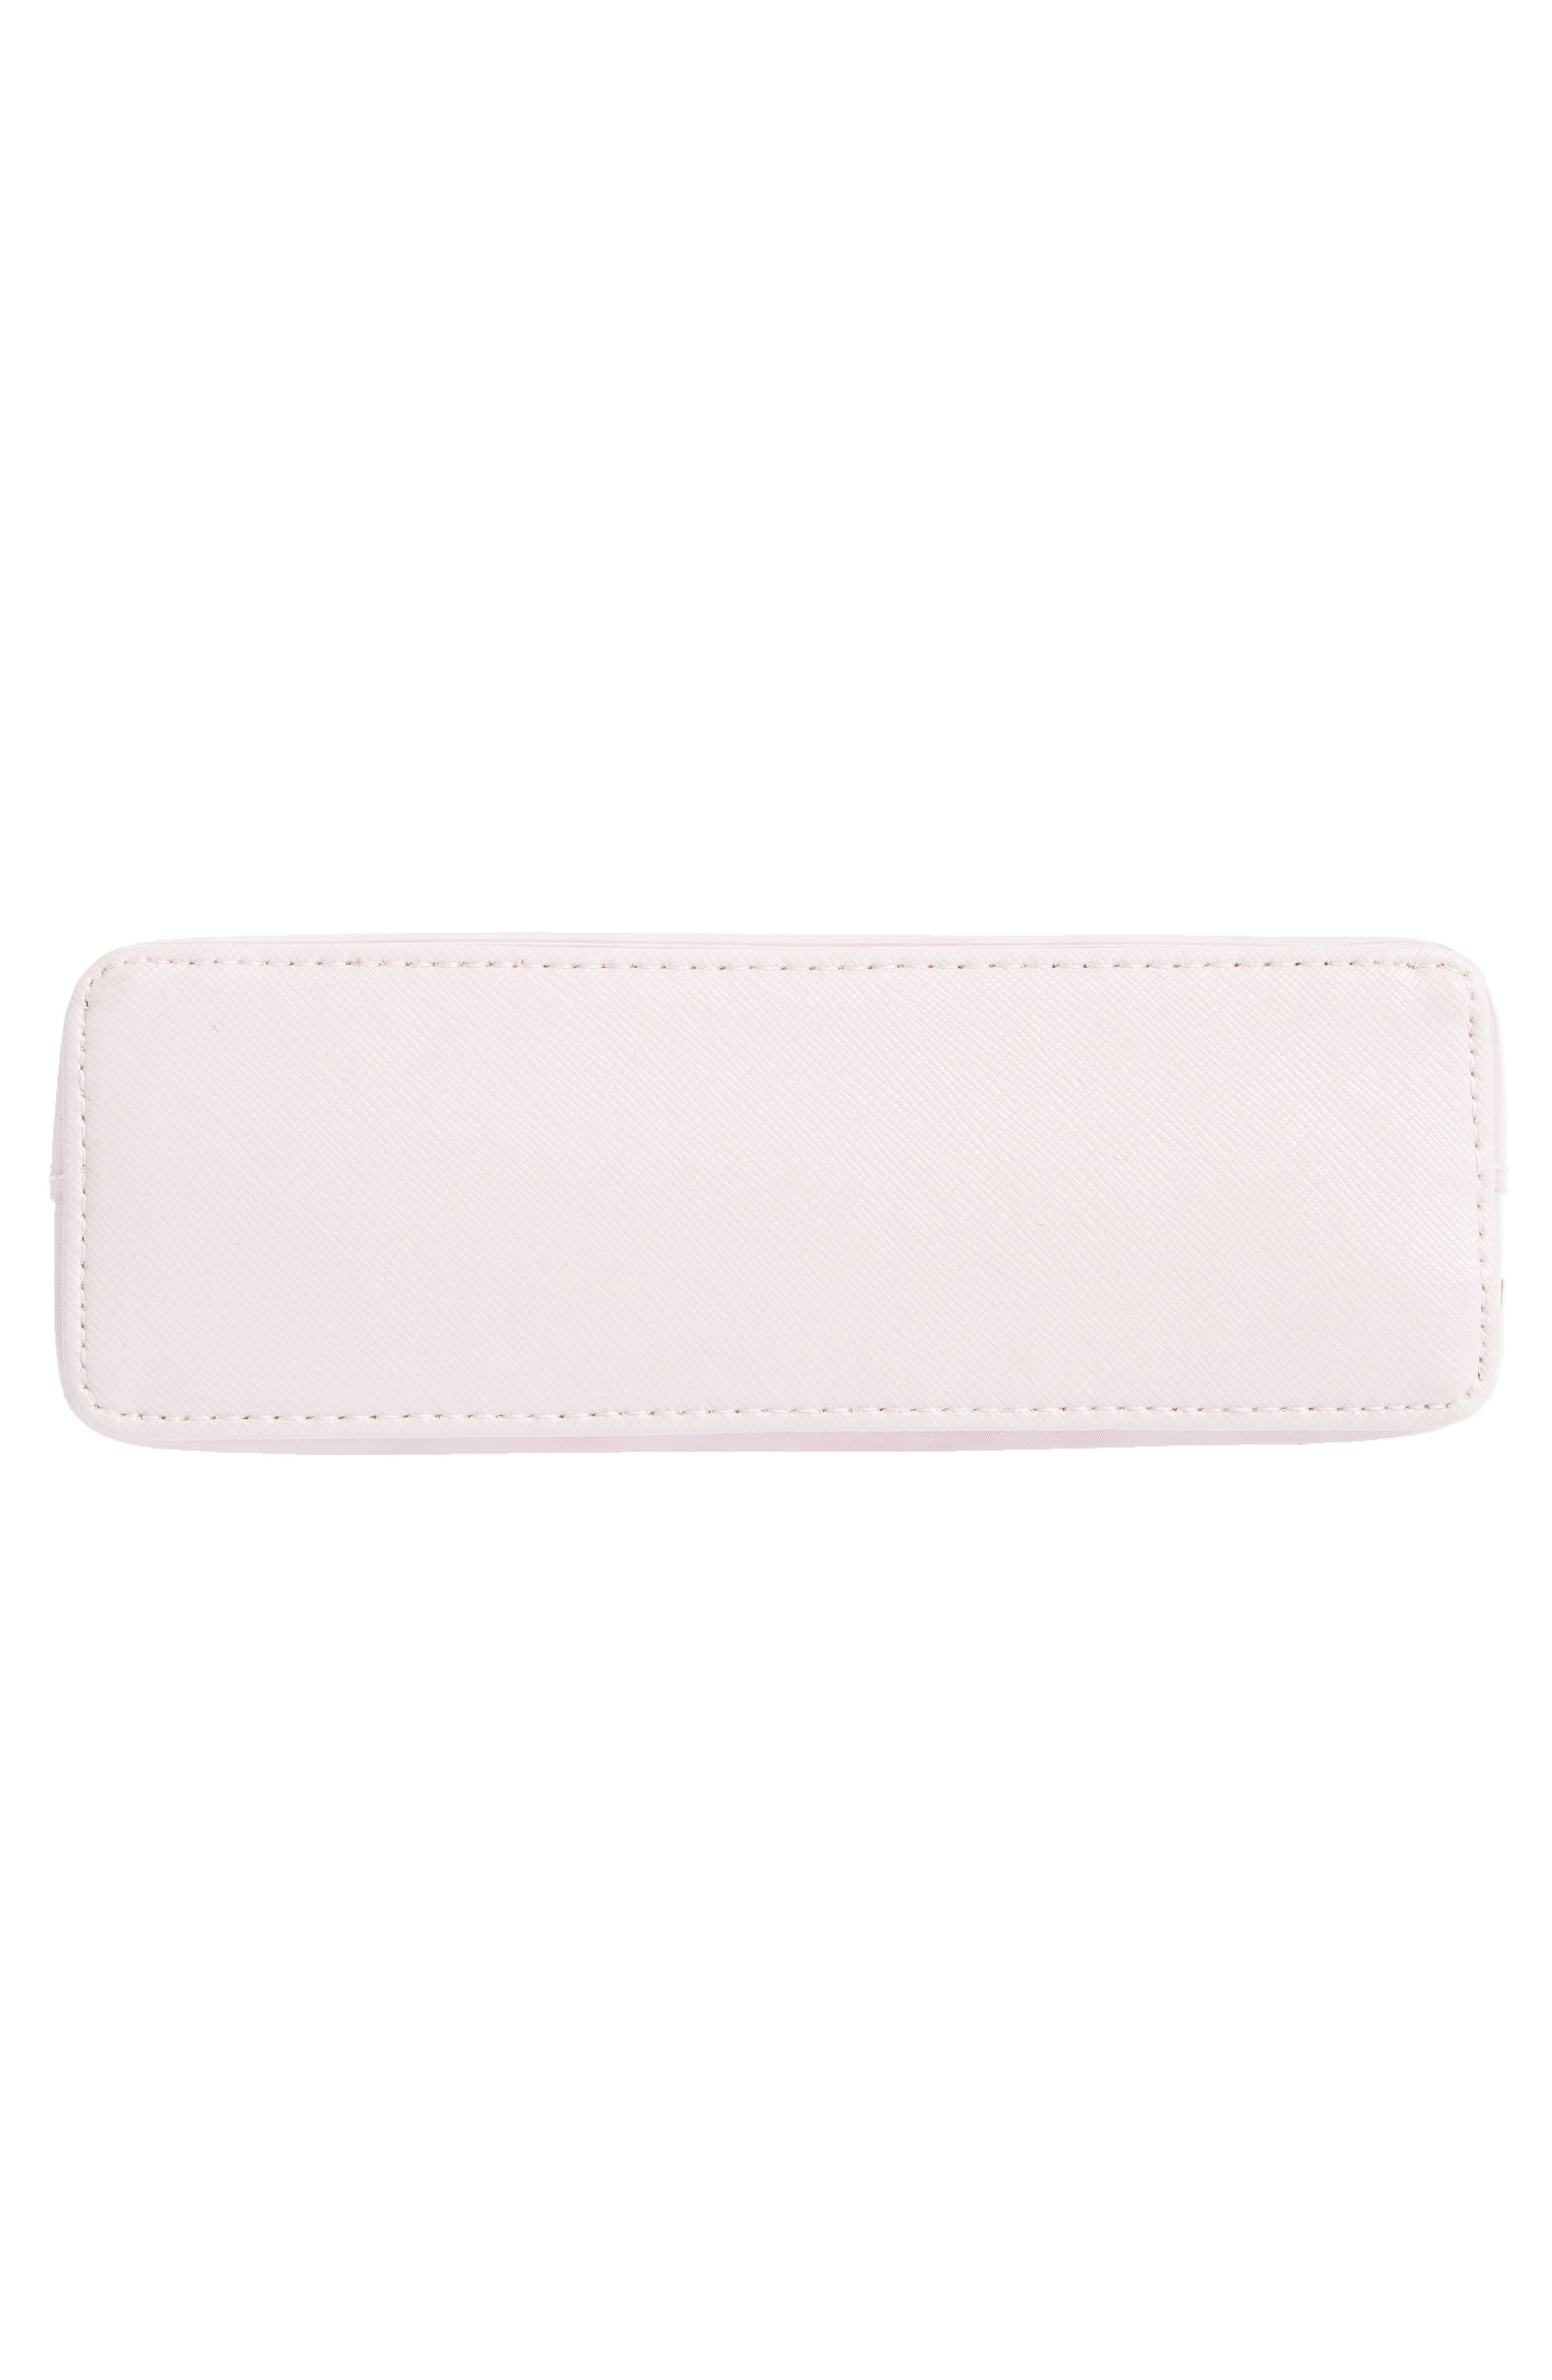 Zandra - Rose Quartz Cosmetics Bag,                             Alternate thumbnail 5, color,                             Nude Pink